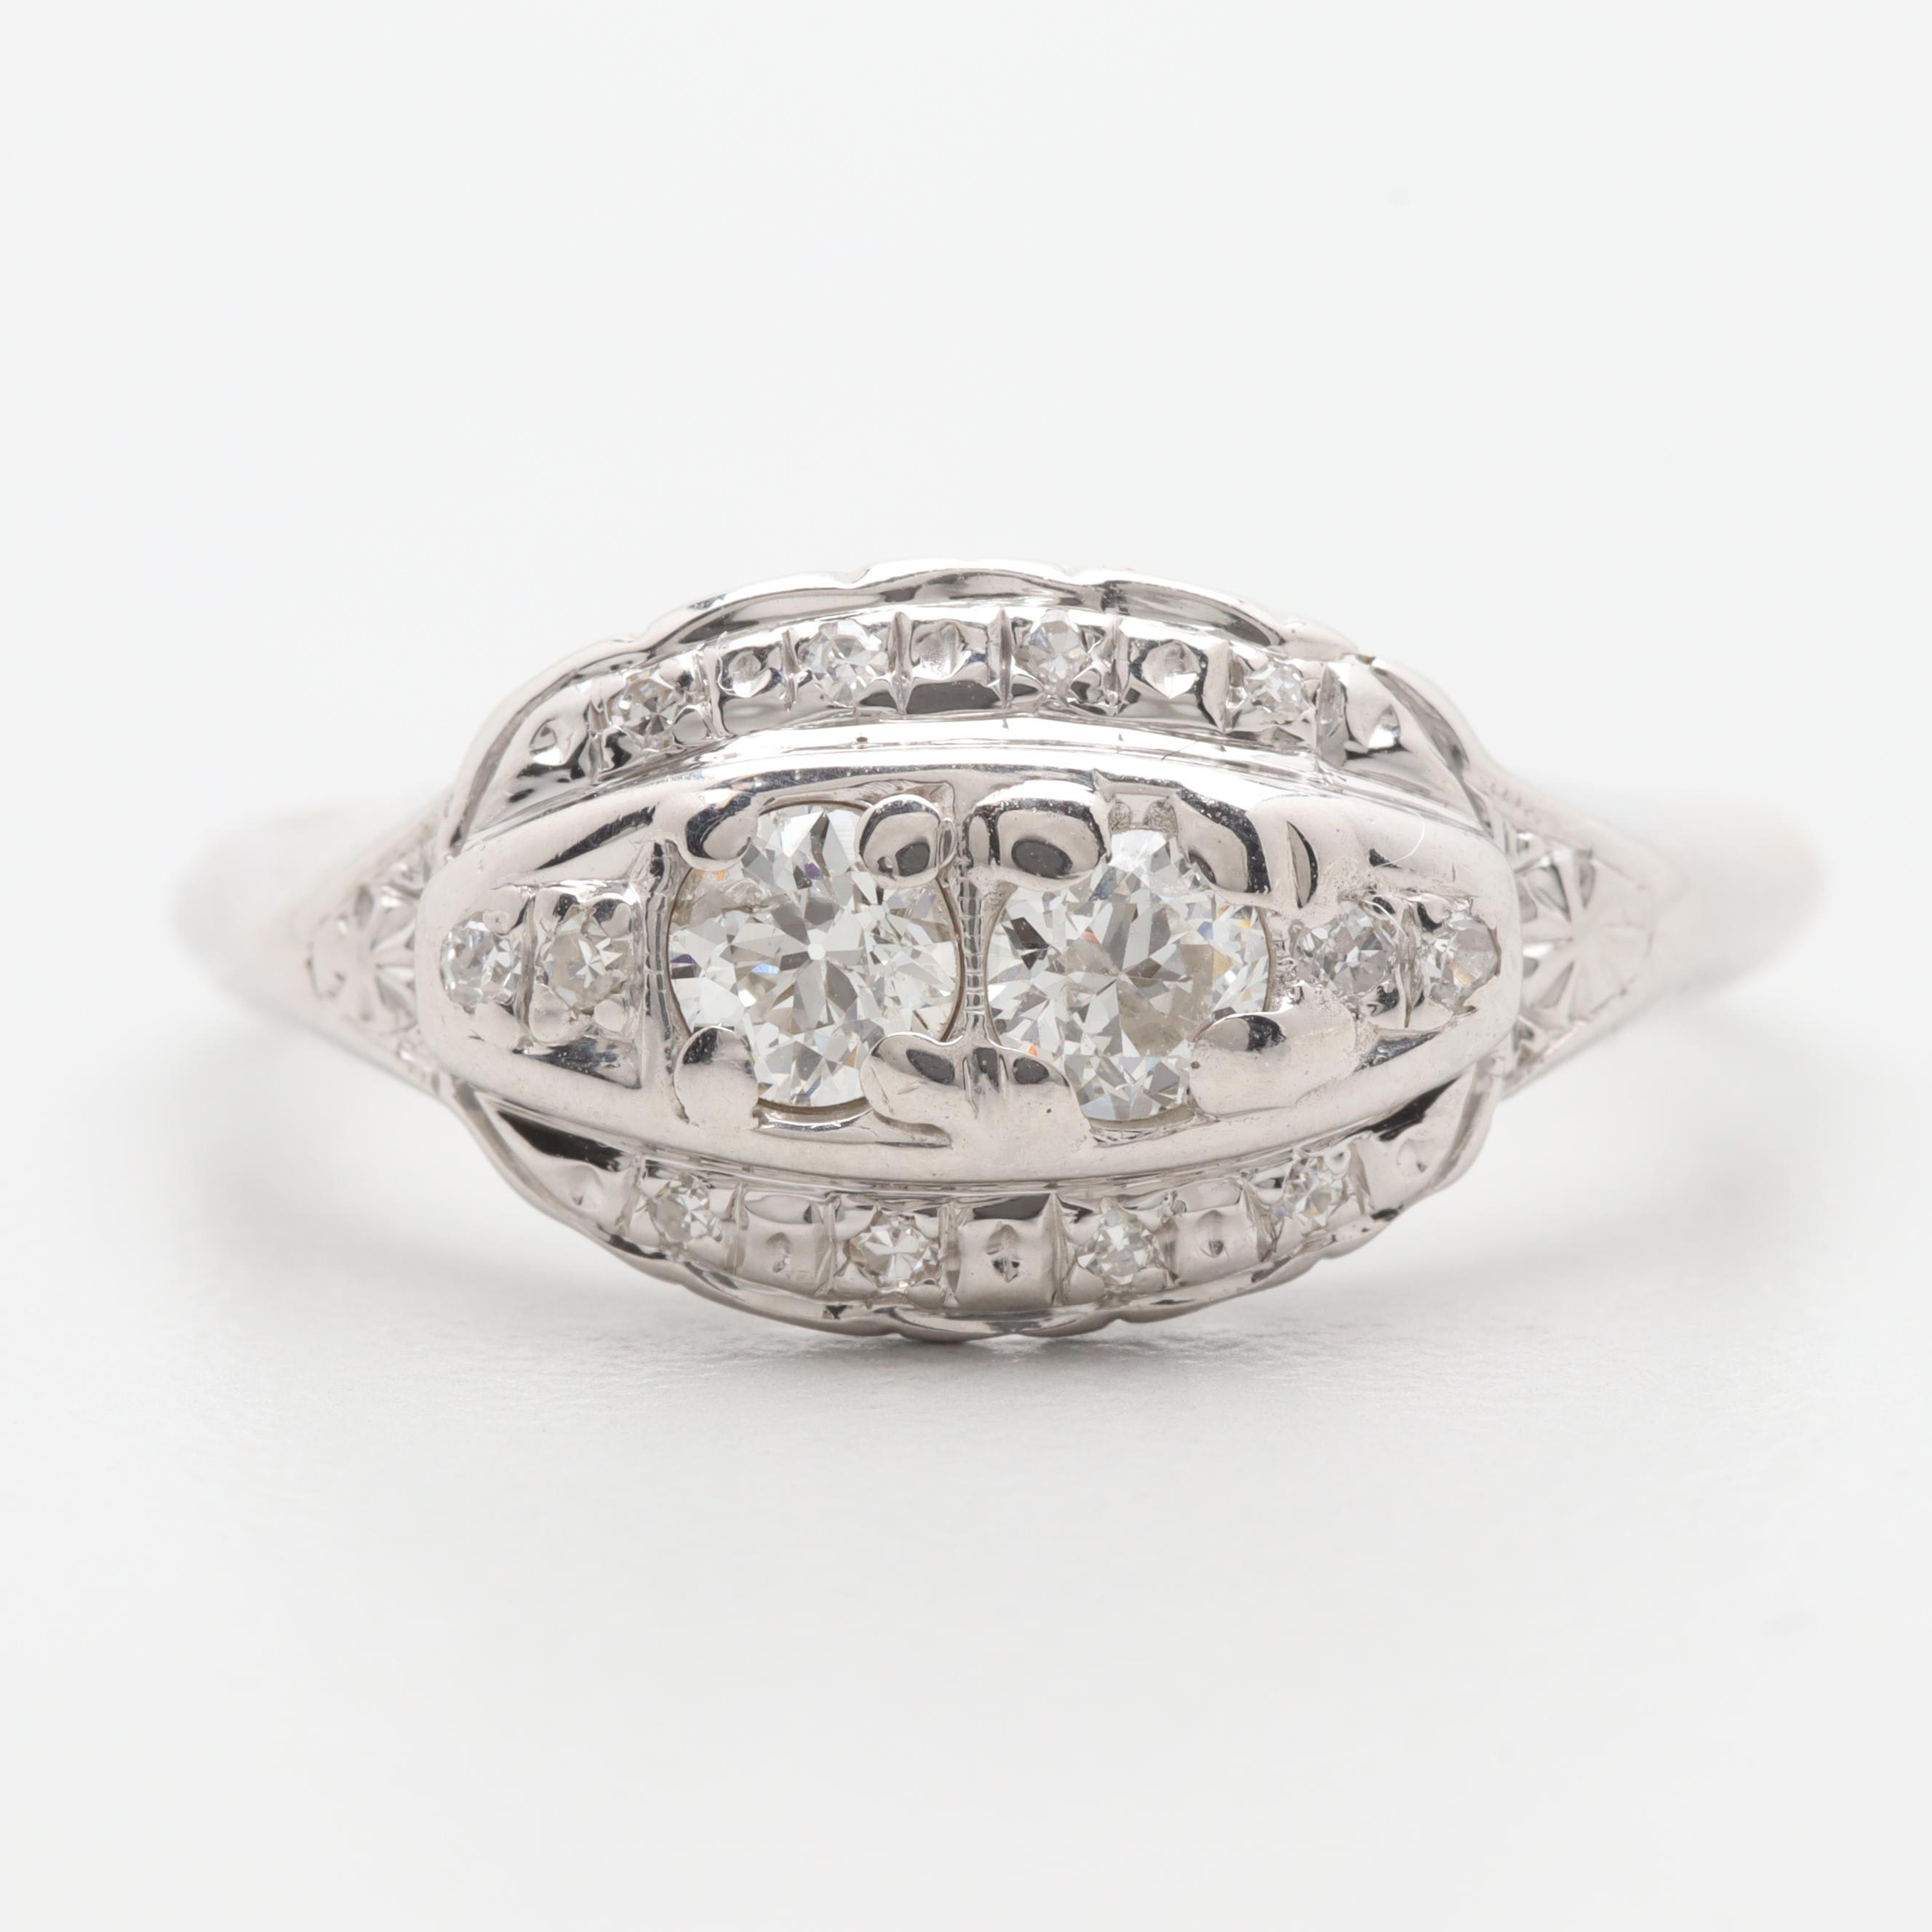 Circa 1940s 14K White Gold Diamond Ring